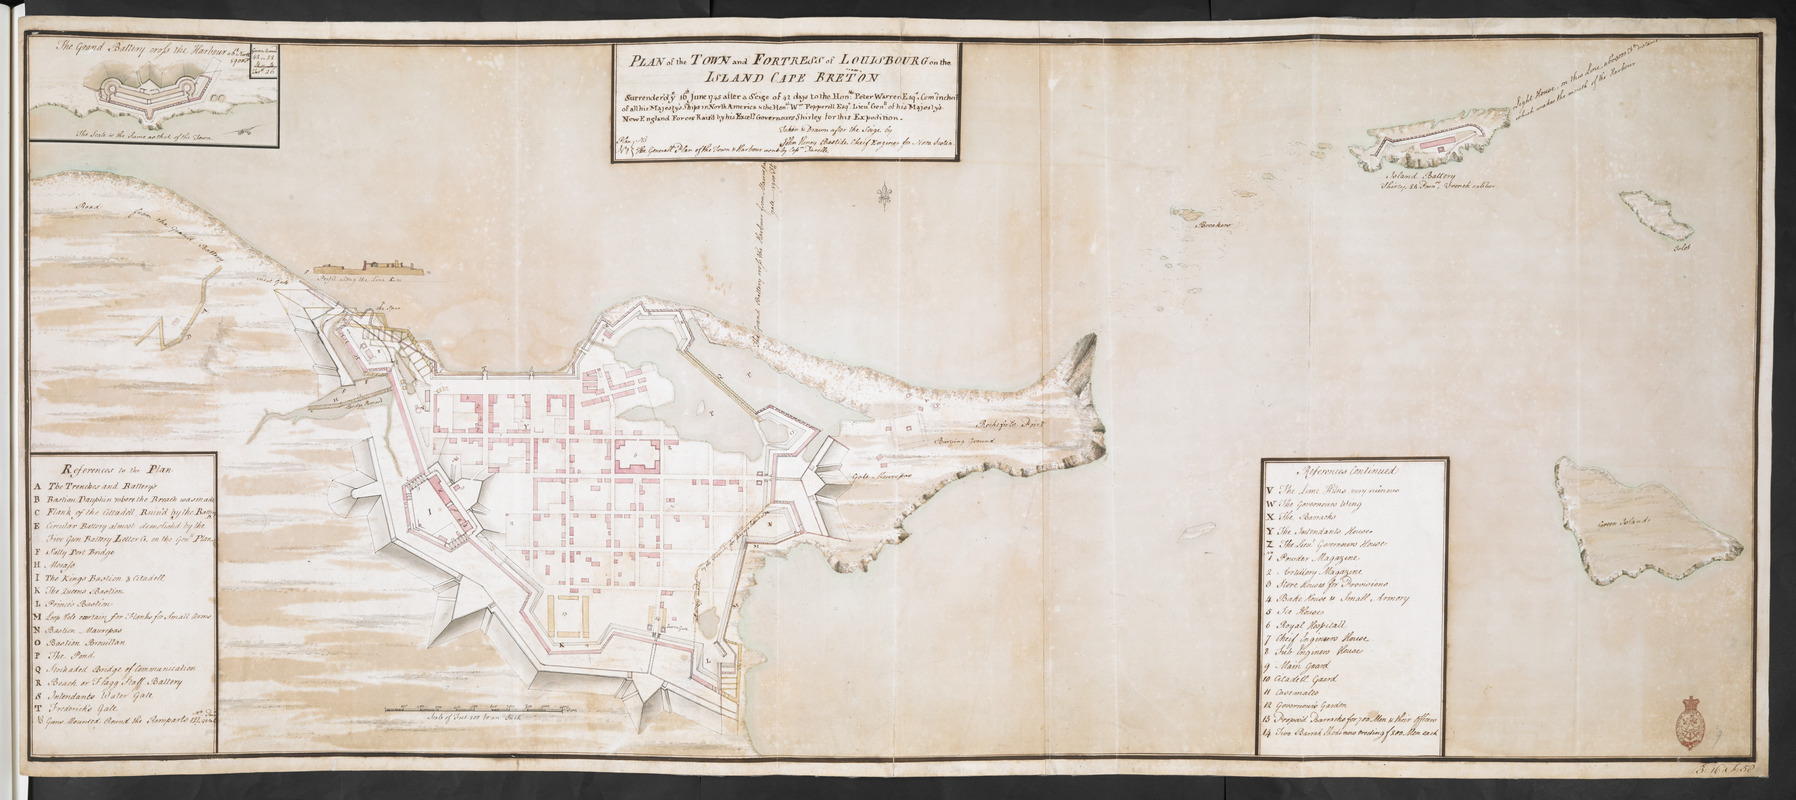 PLAN of the TOWN and FORTRESS of LOUISBOURG on the ISLAND CAPE BRETON